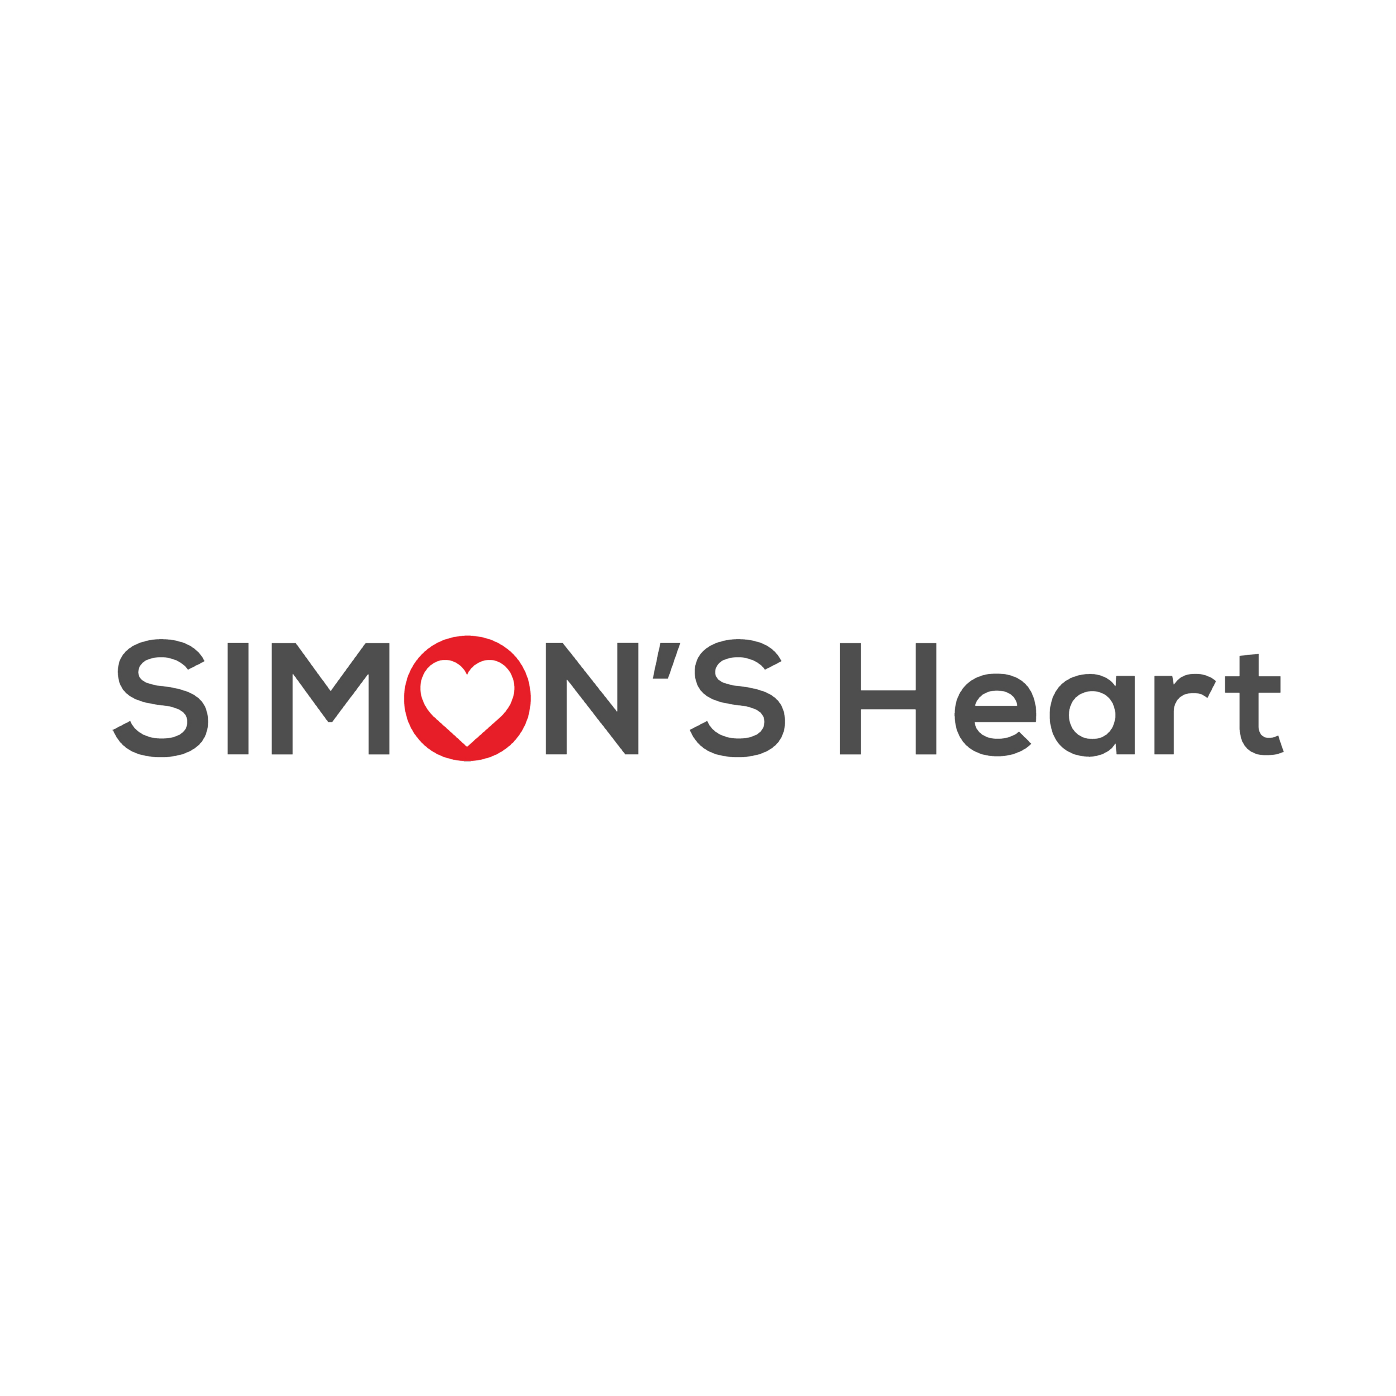 Simon's Heart Logo